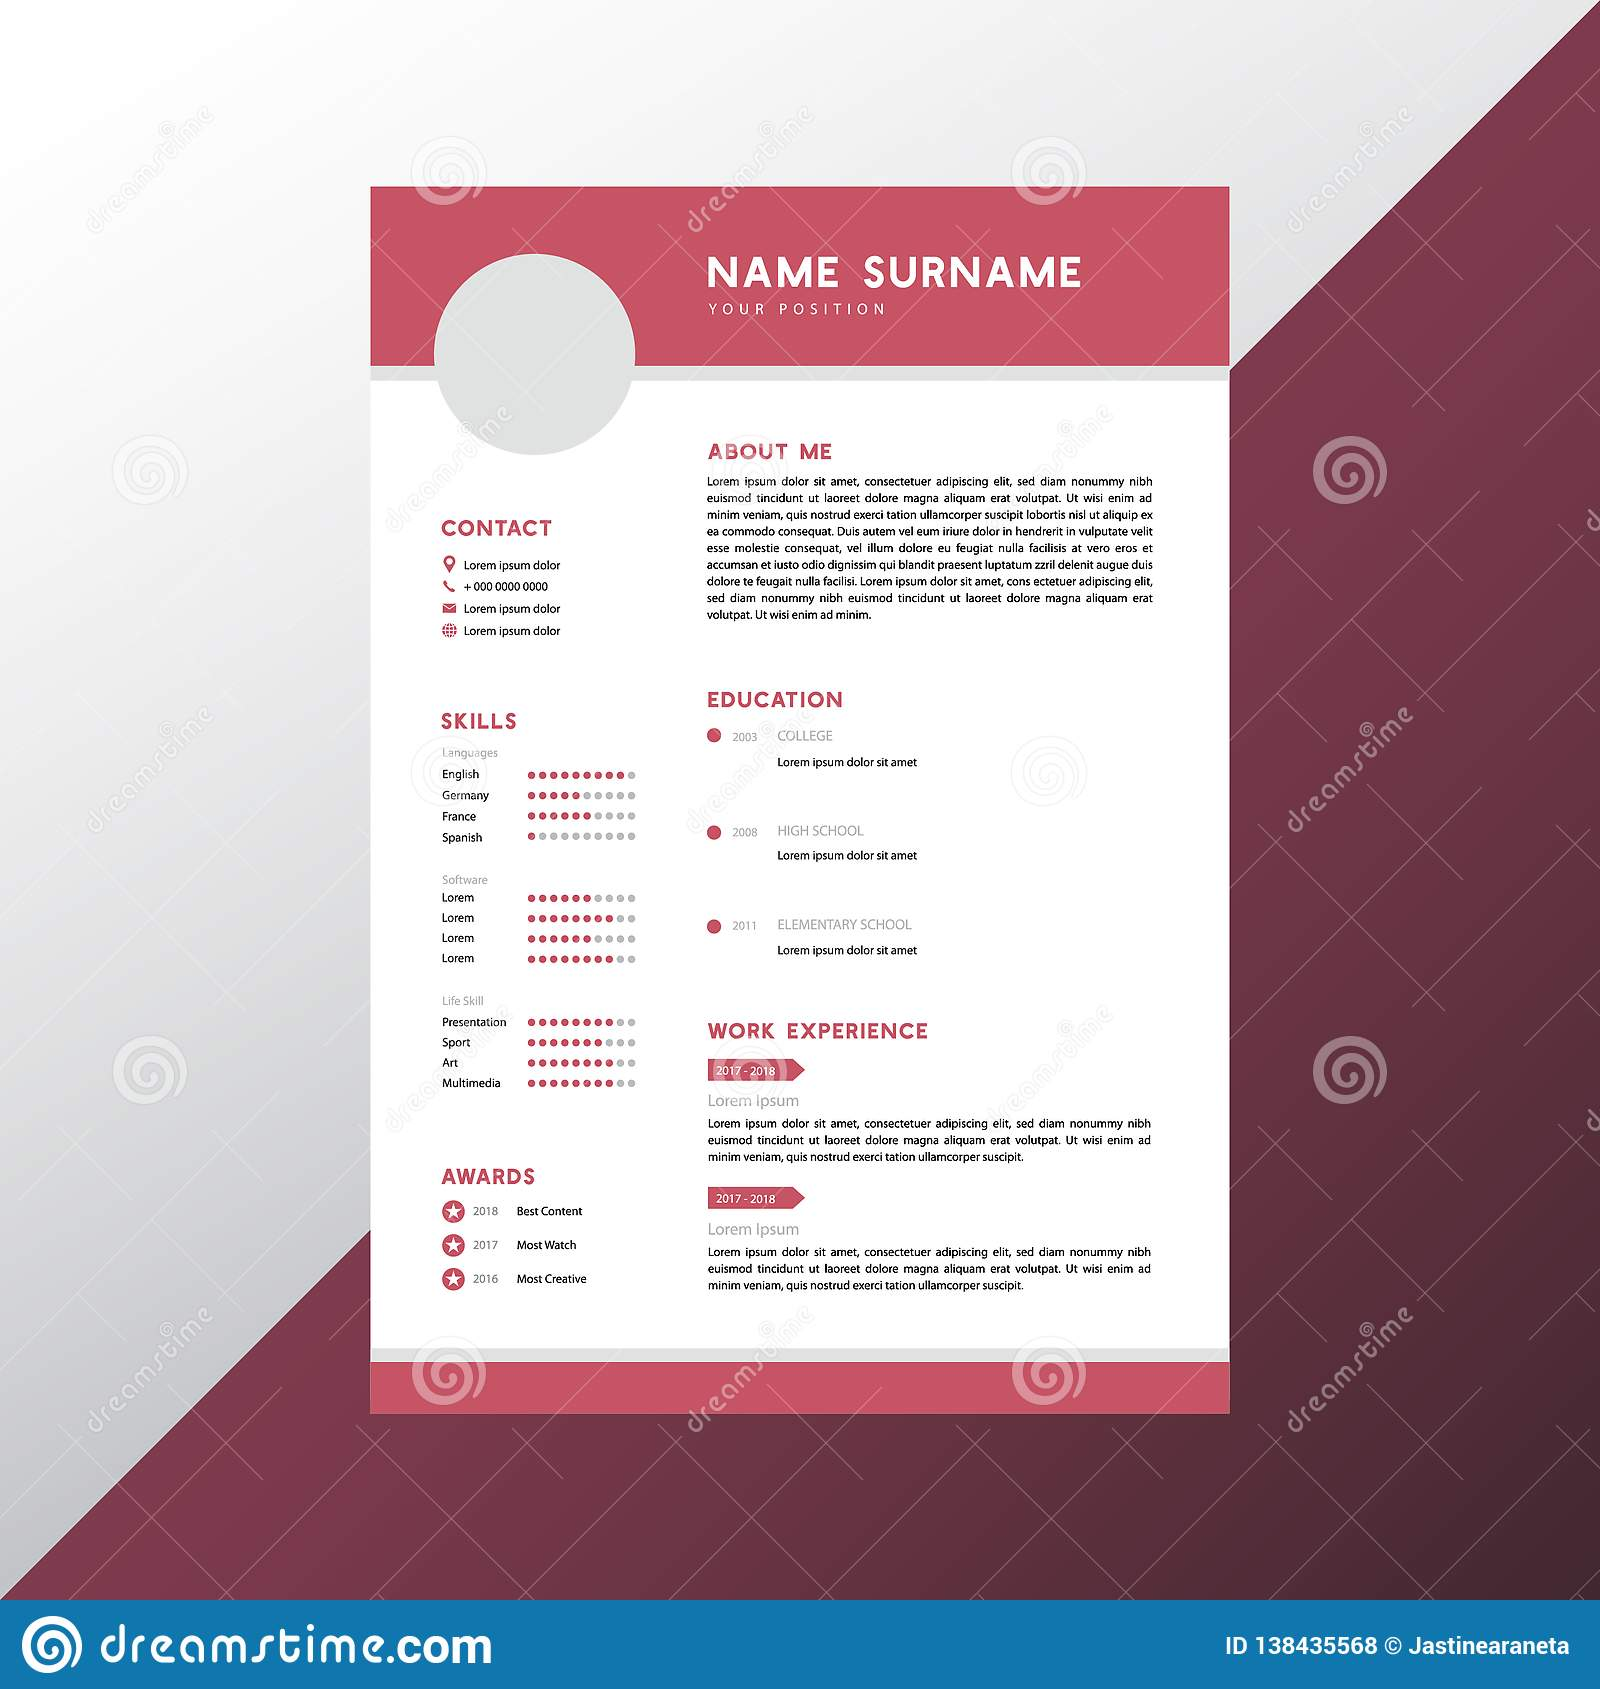 Simple Cv Design from thumbs.dreamstime.com